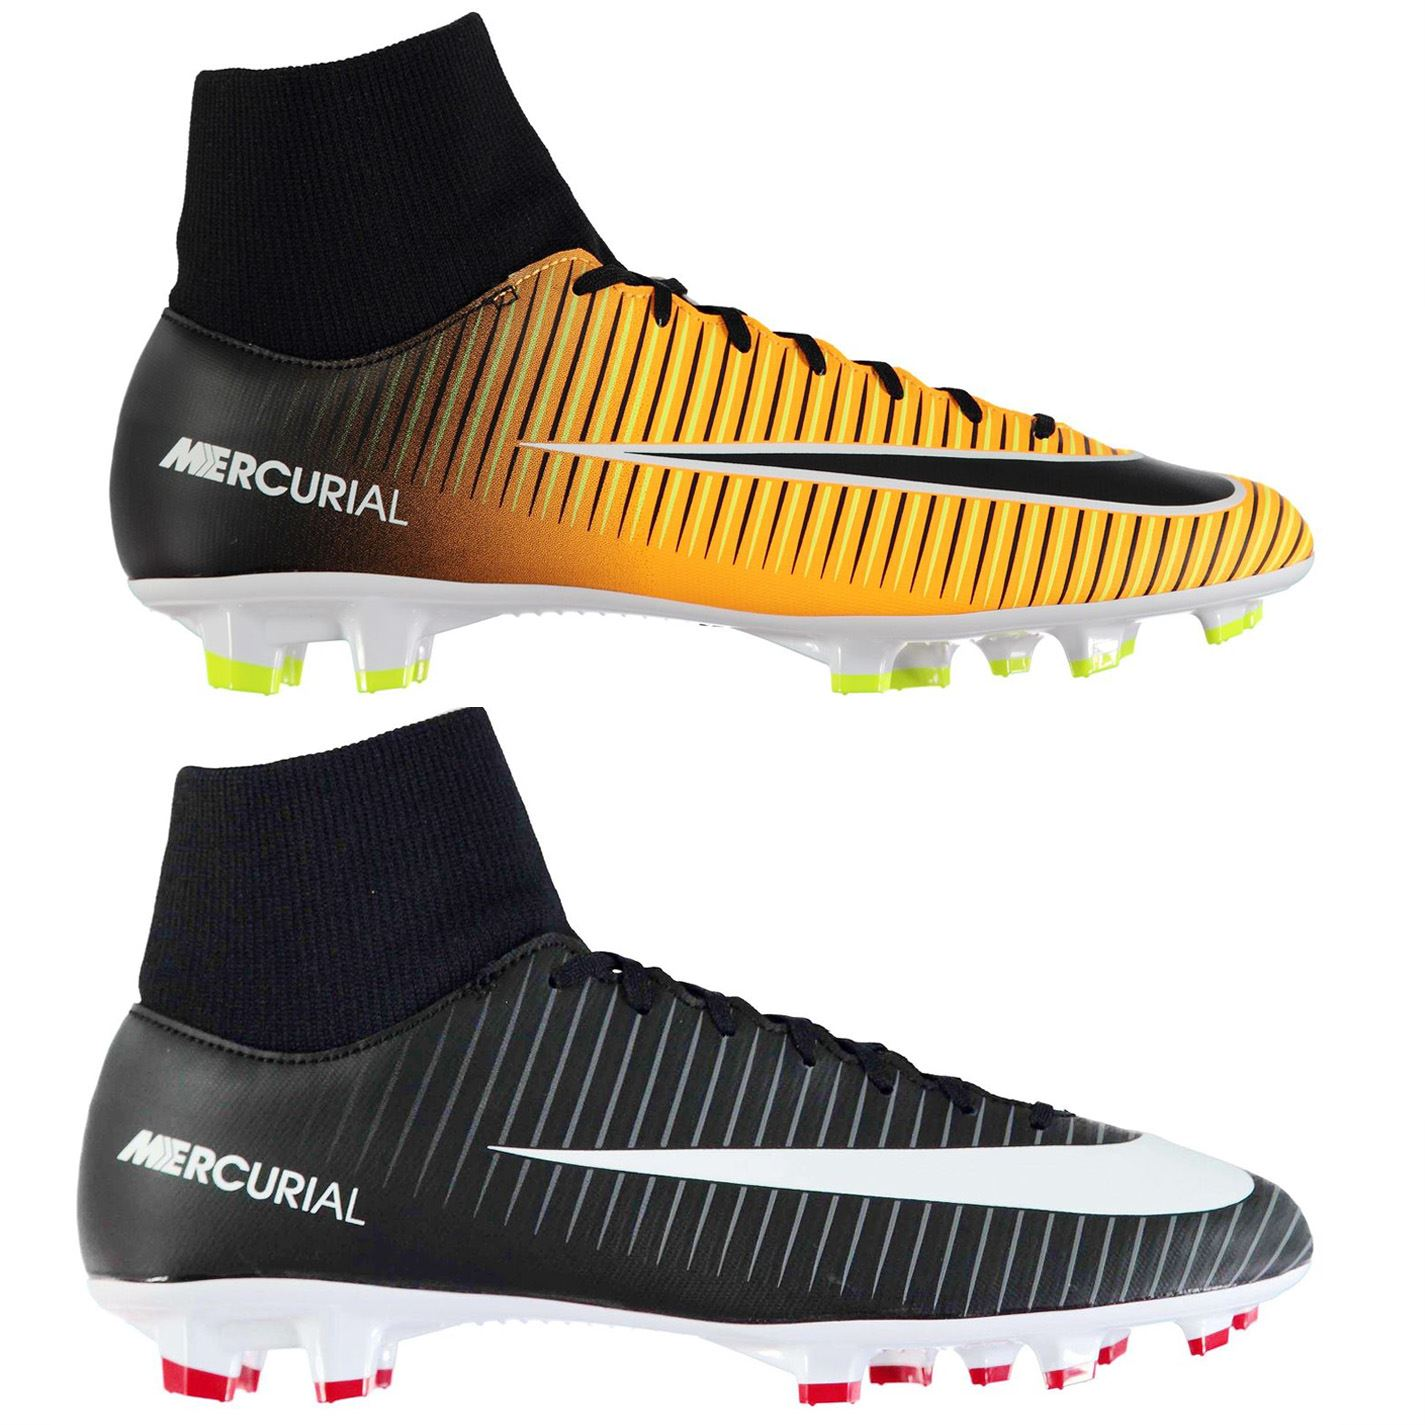 Buy 2 OFF ANY scarpe da calcio nike mercurial CASE AND GET